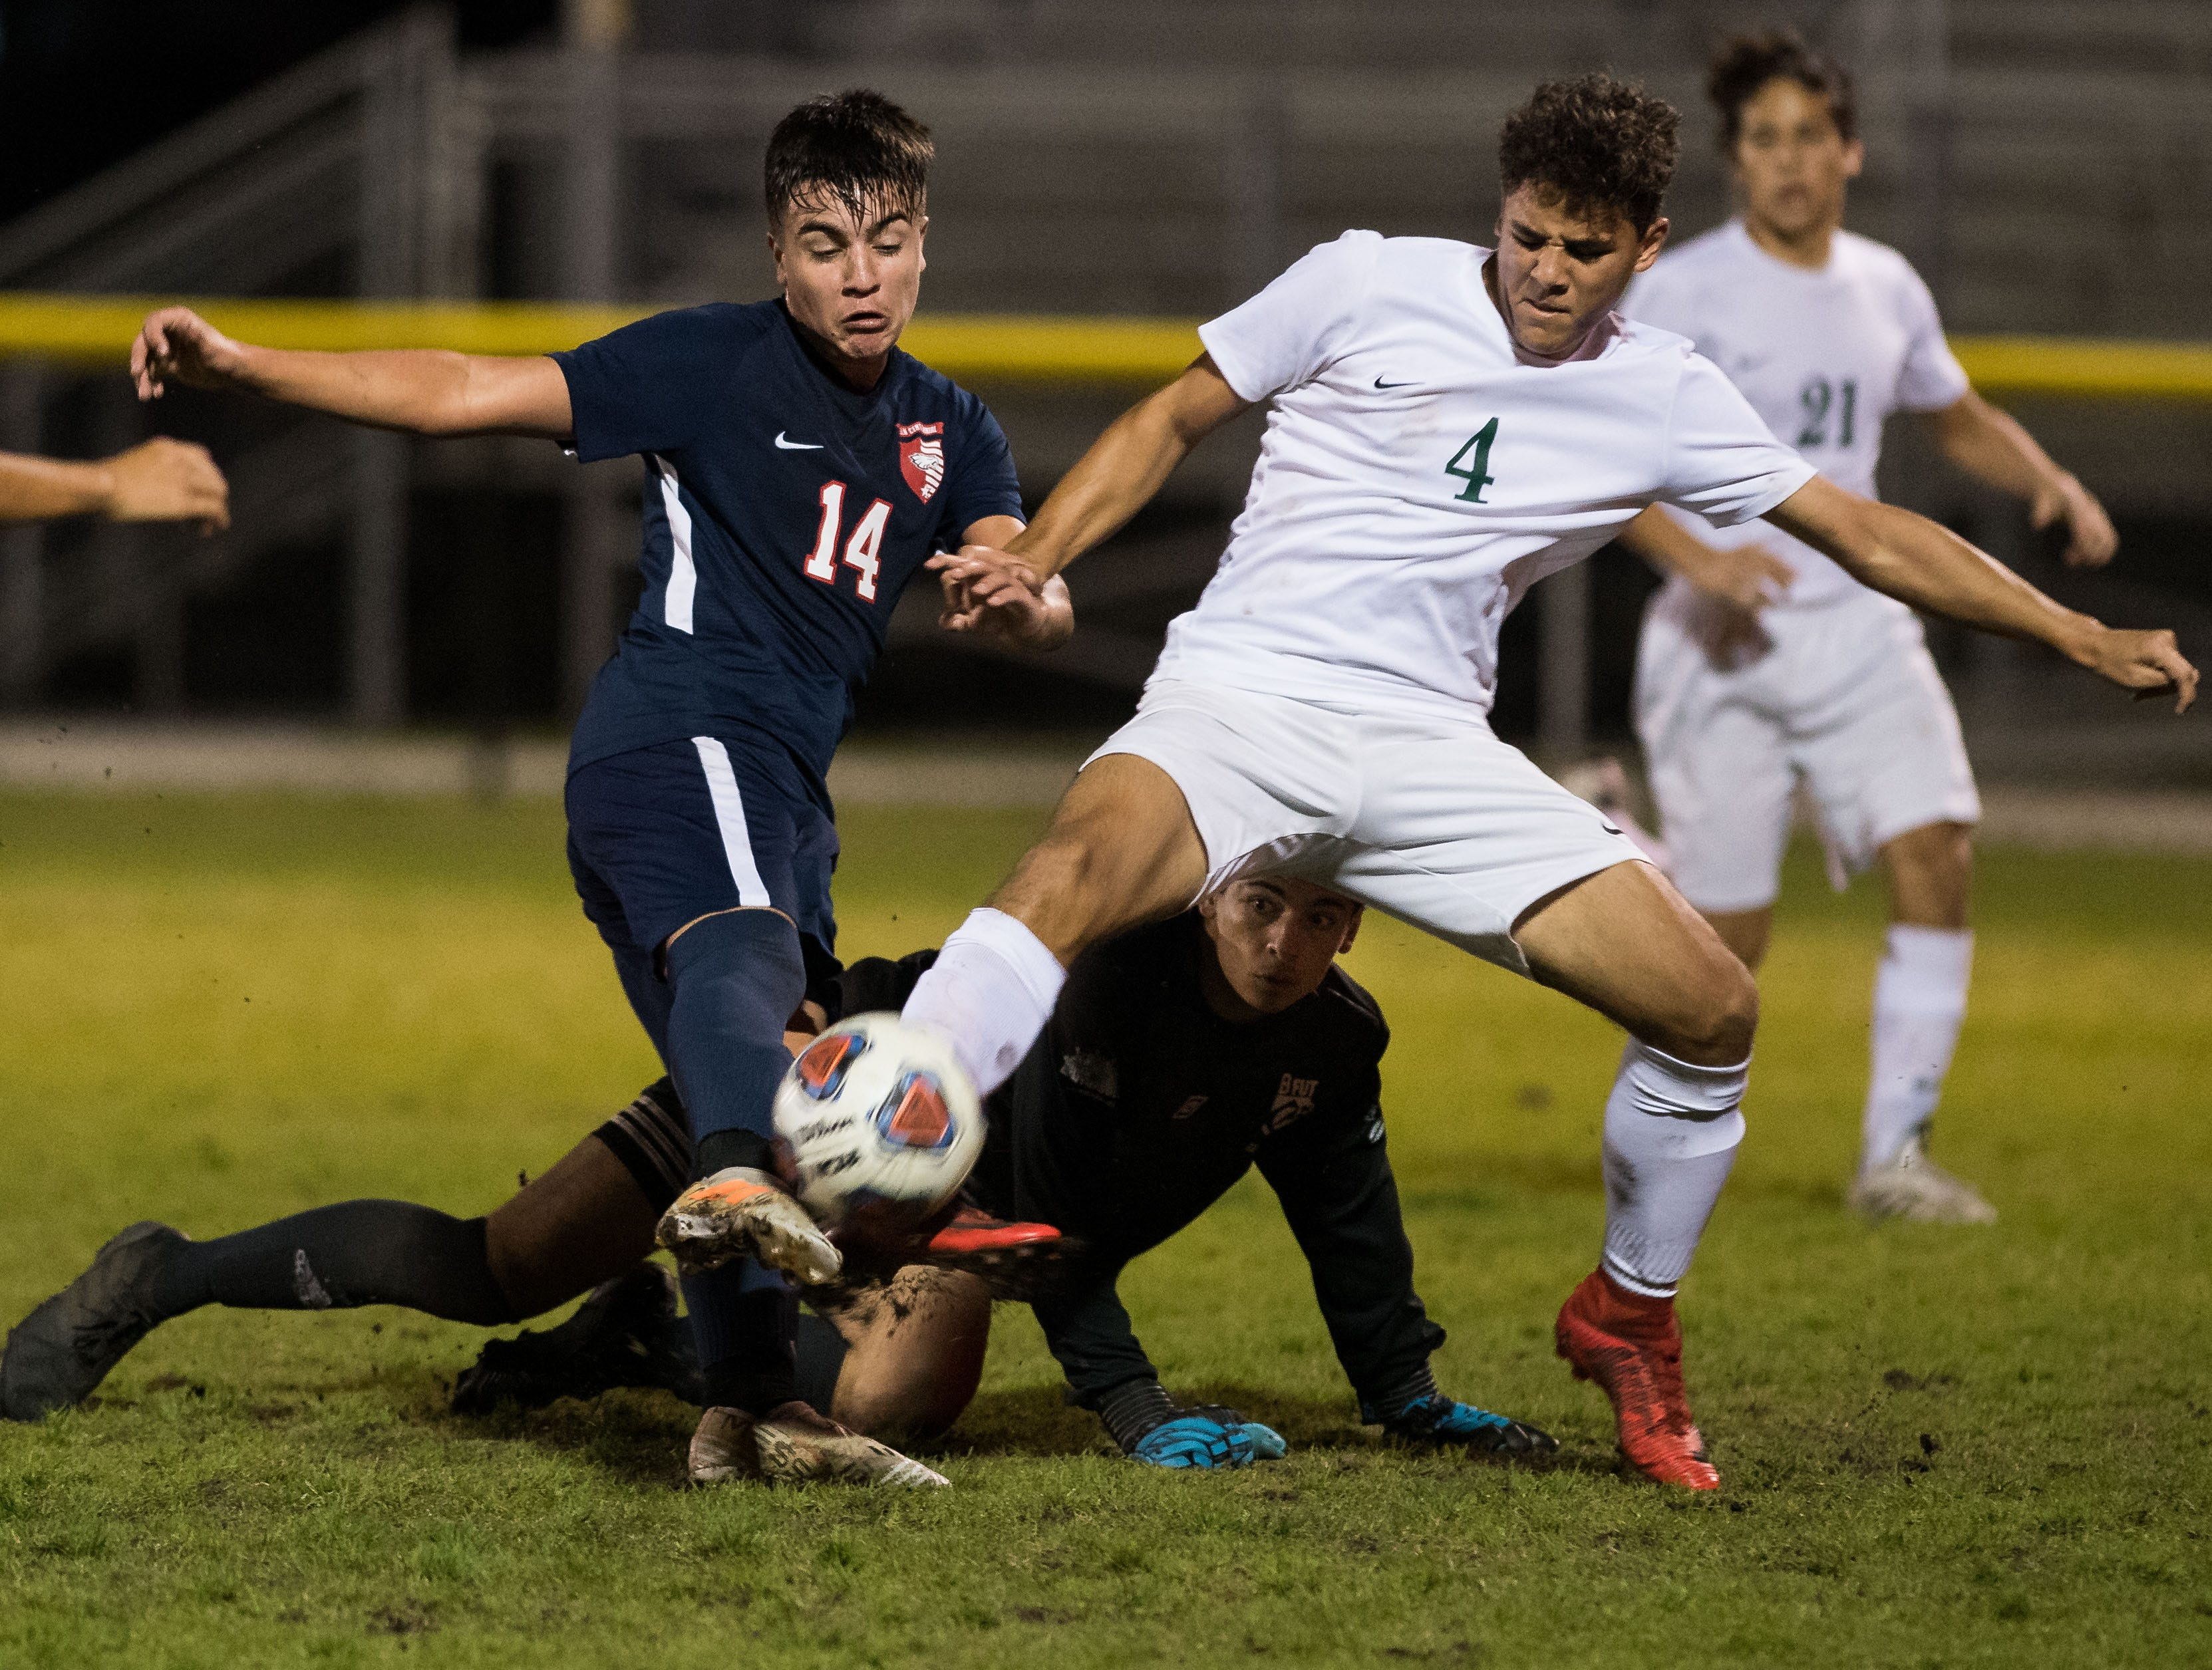 Jupiter's Cory Gonzalez (right) defends against St. Lucie West Centennial's Nico Guerrero, as Jupiter goalkeeper Gil Medina looks on from the ground, during the second half of the high school boys soccer District 10-5A championship game Friday, Feb. 1, 2019, at South County Regional Stadium in Port St. Lucie.